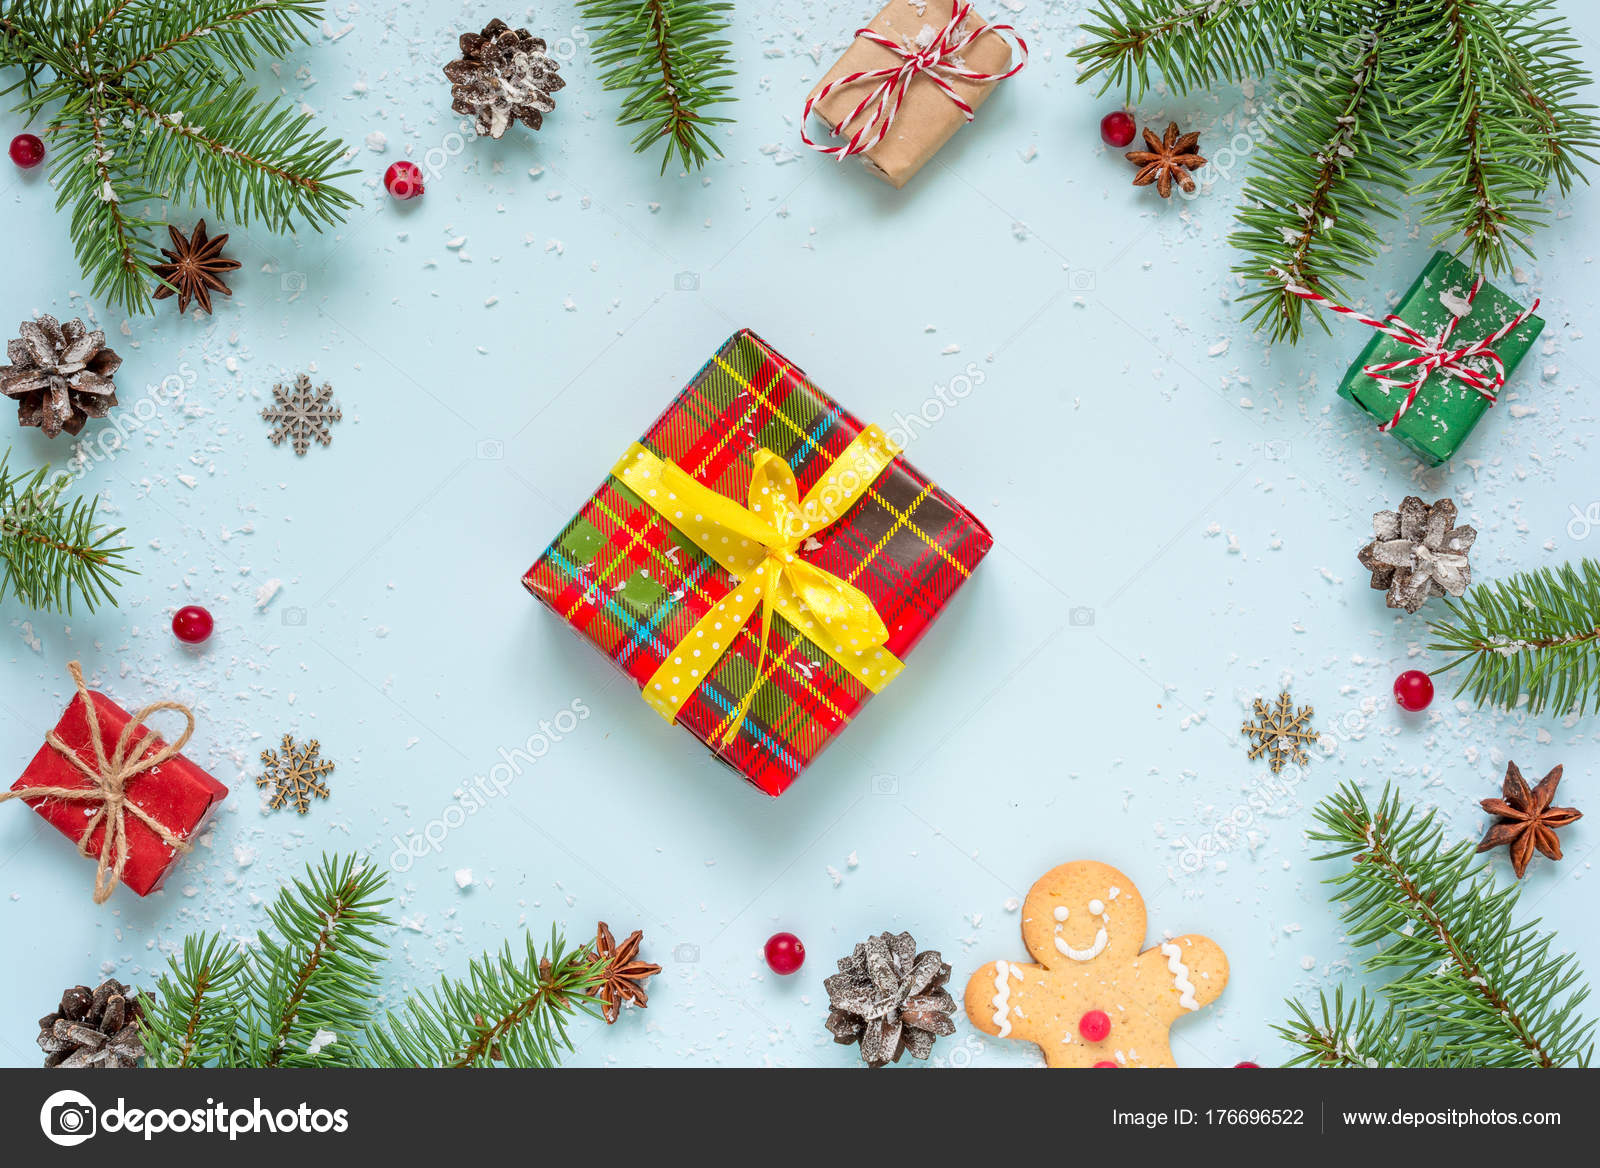 christmas composition frame made of fir tree decorations red berries gift boxes and pine cones on blue background christmas background